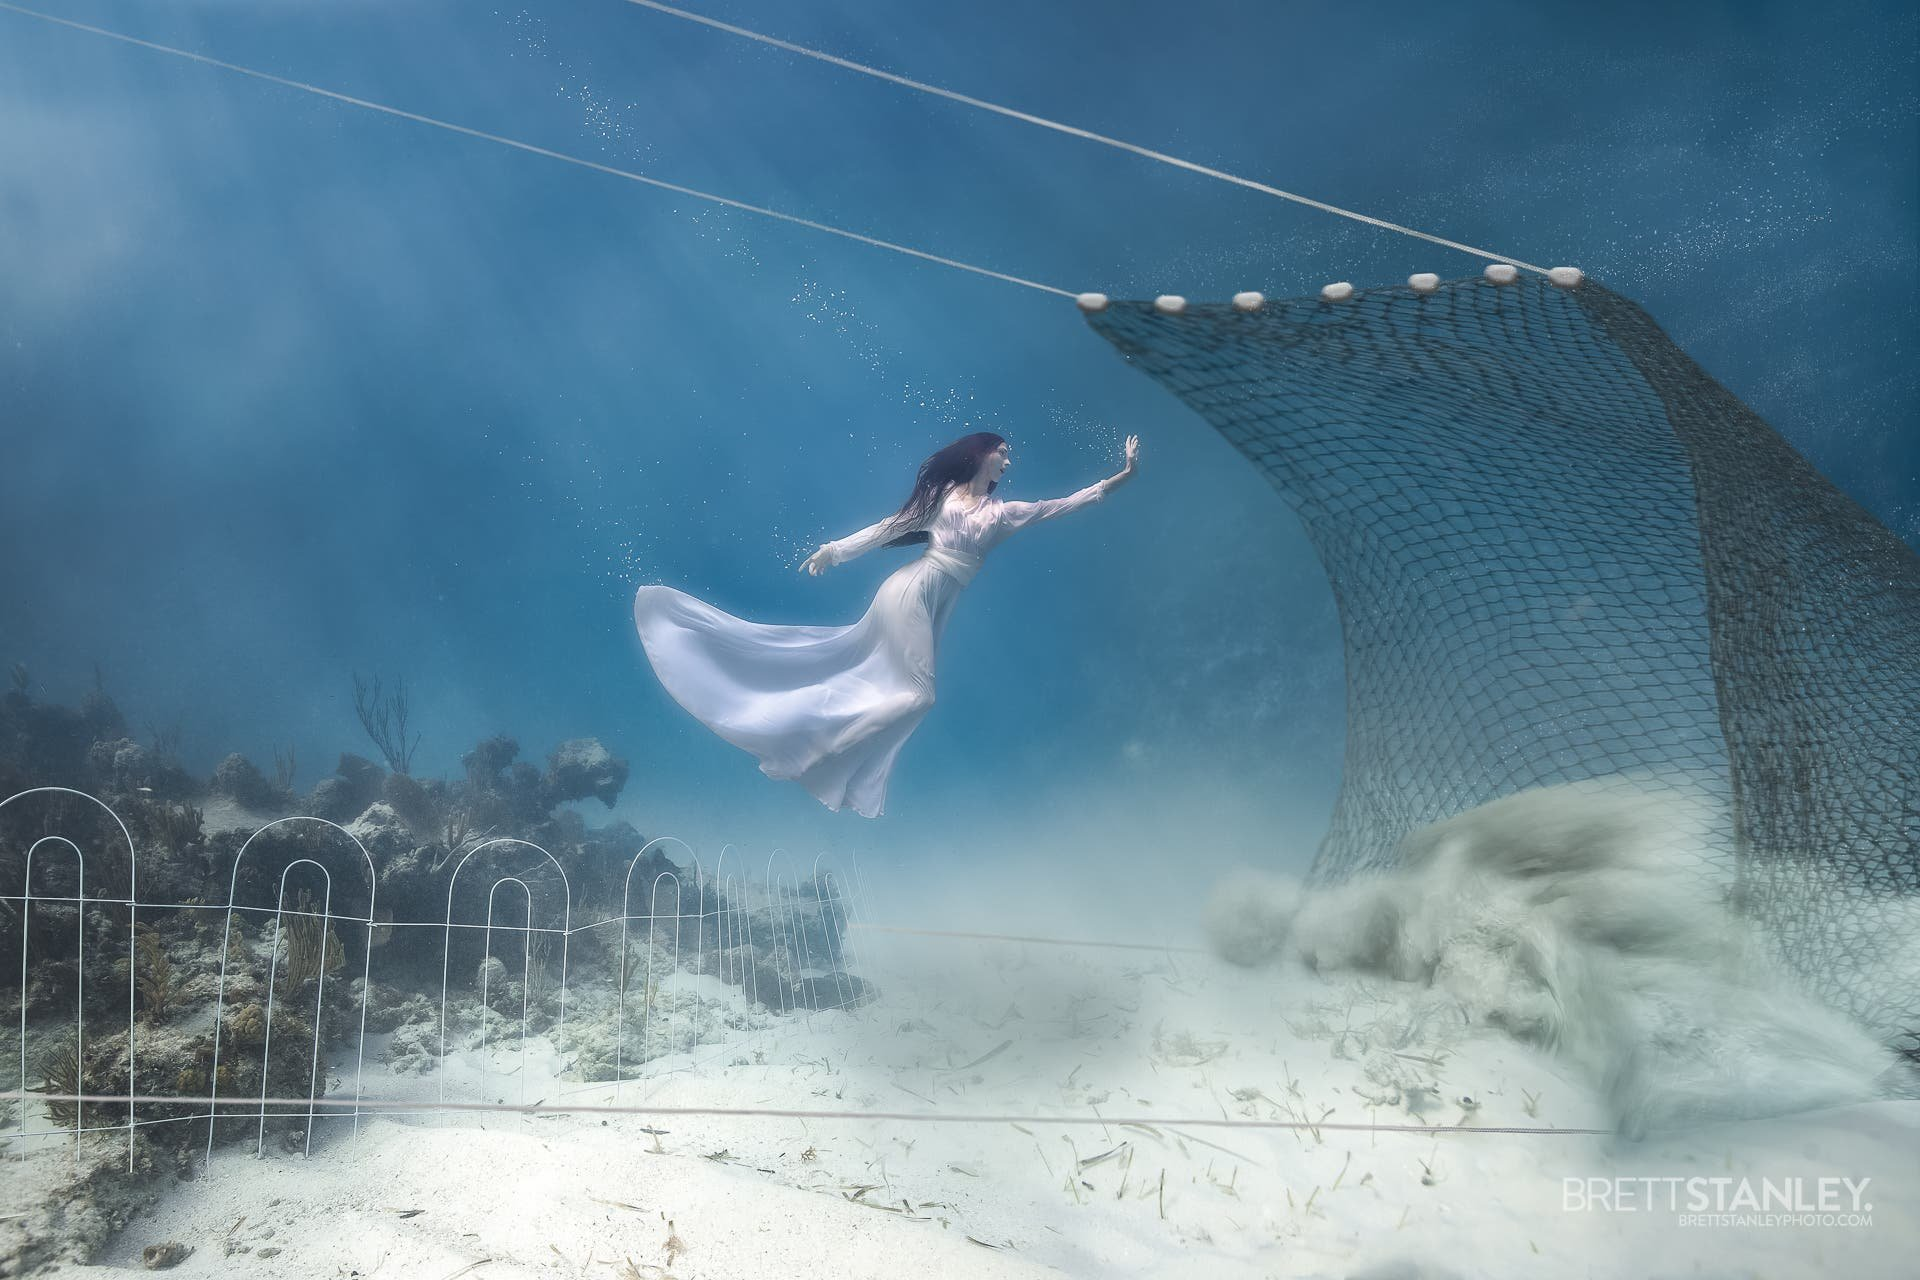 Ocean Guardians Tackles the Issue of Trawling in a Creative Way